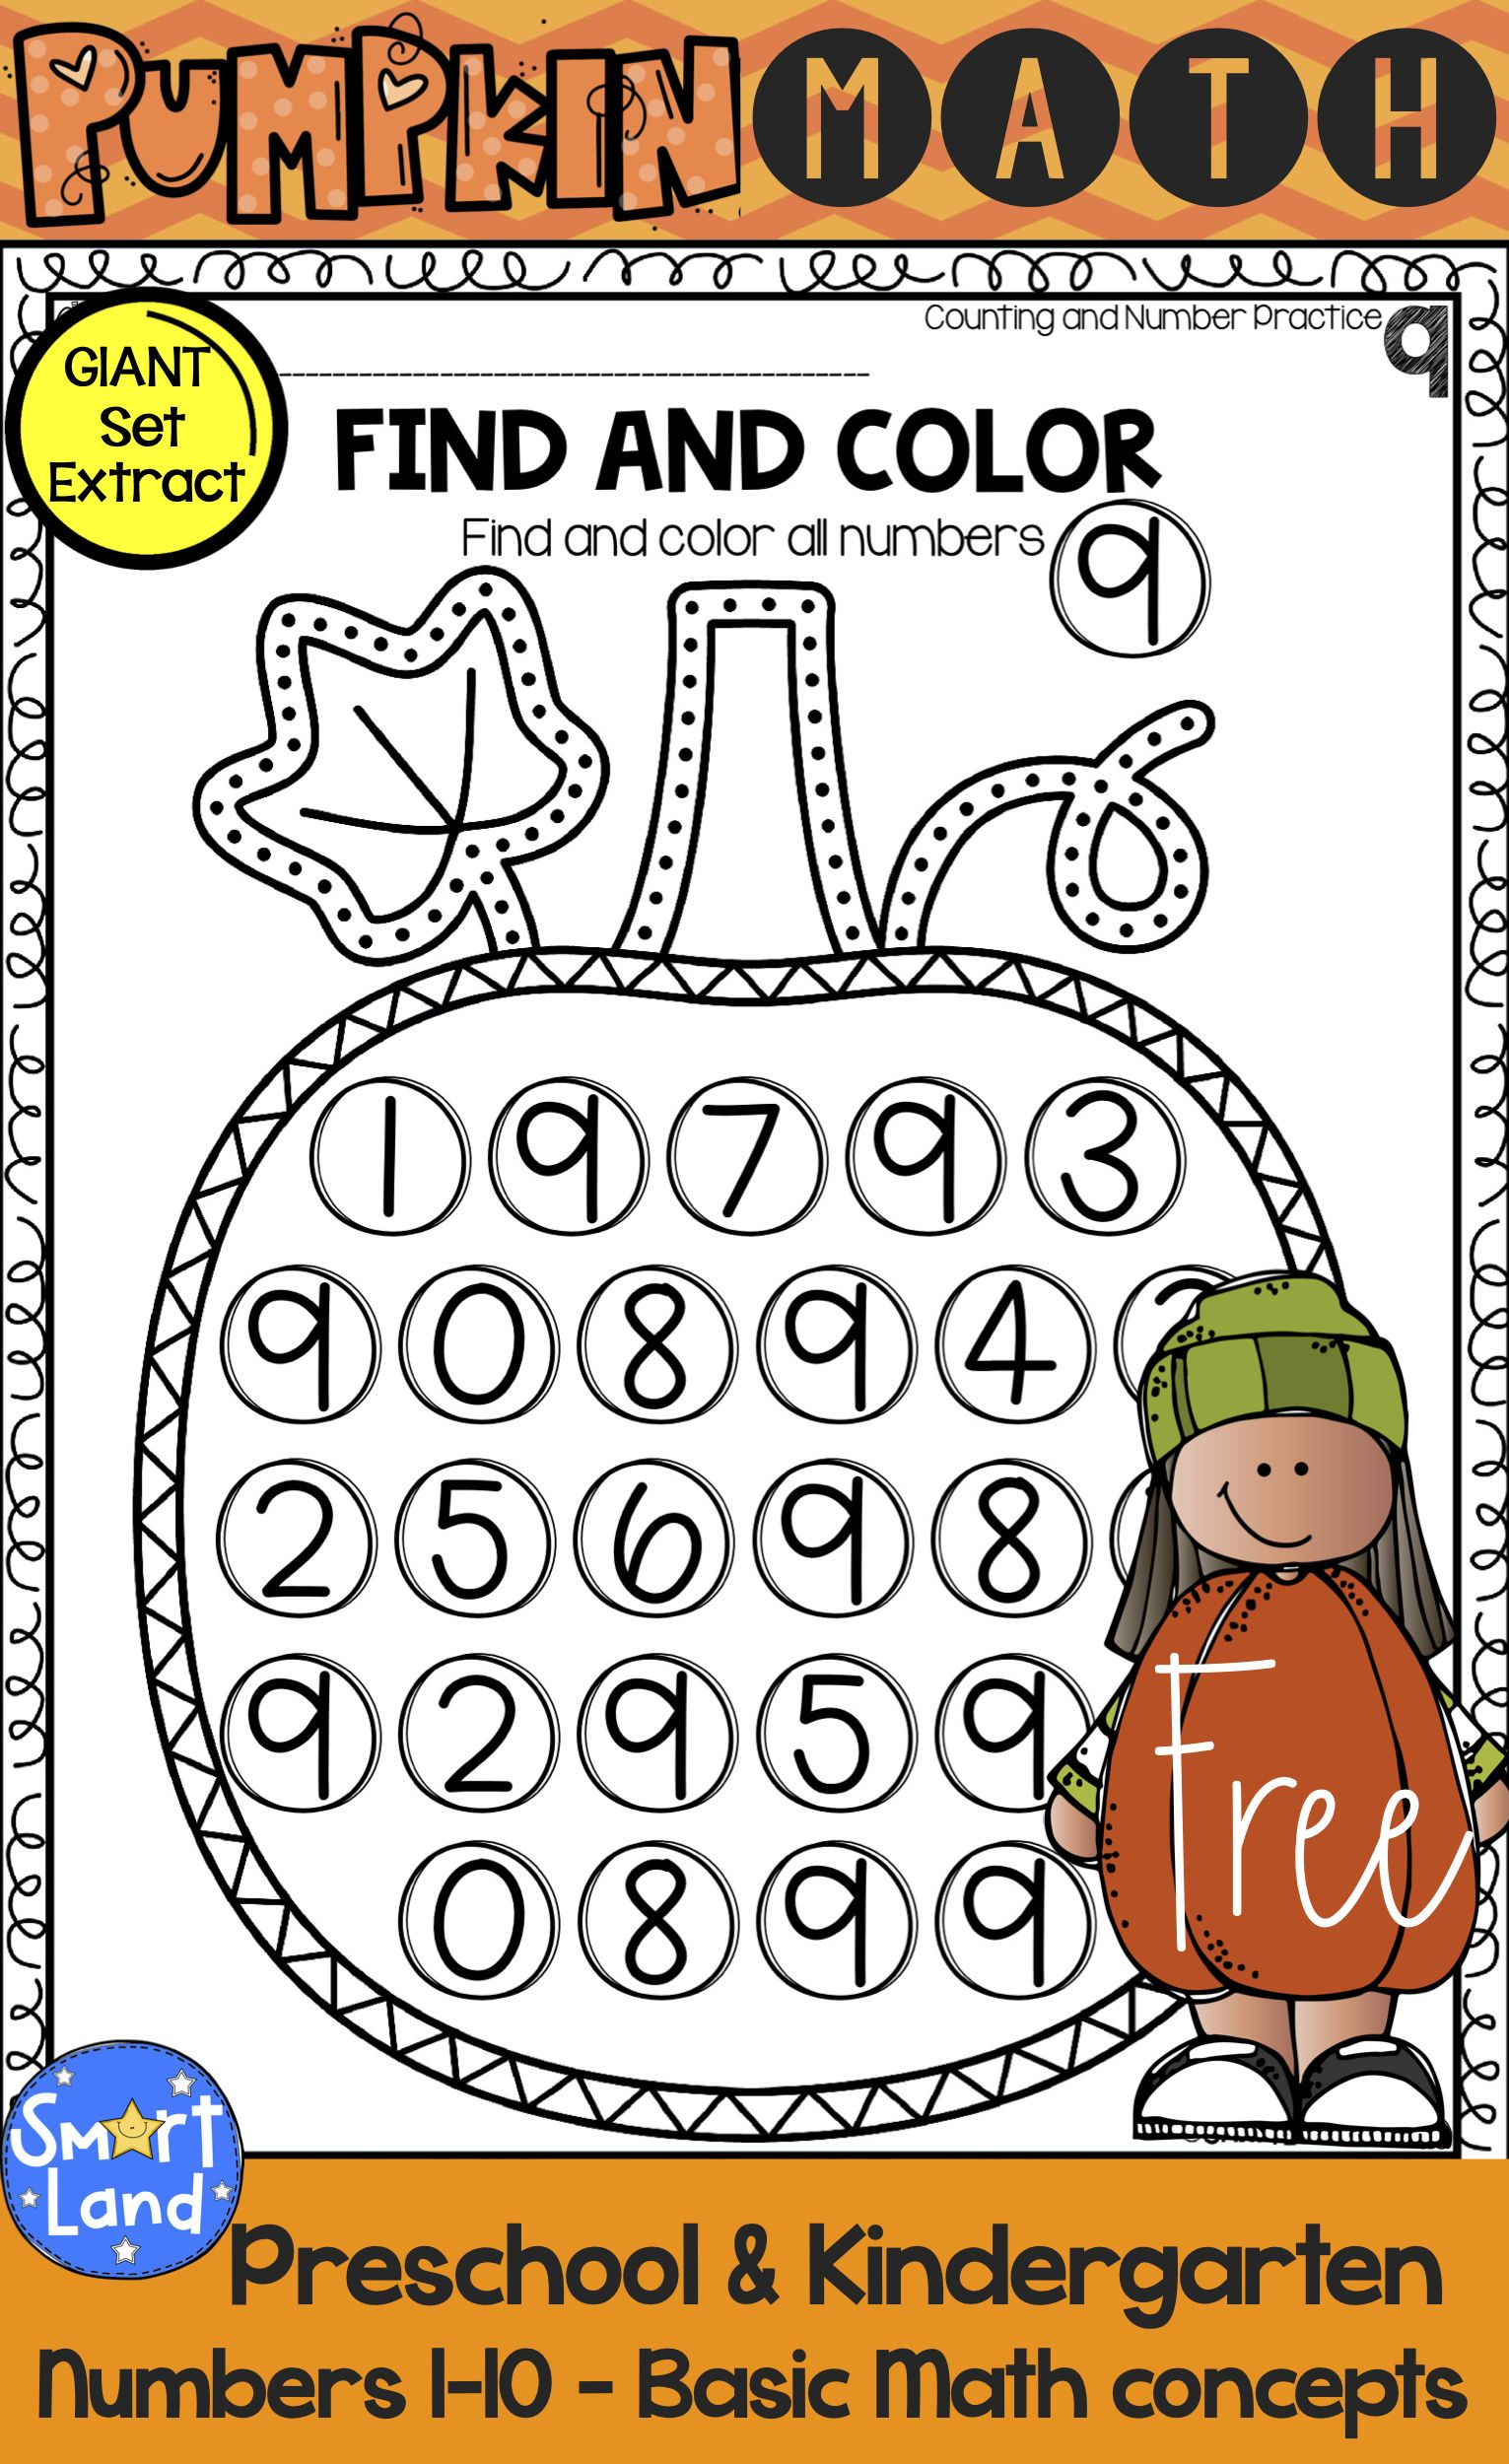 Free Math Practice Worksheets Numbers 1 10 Perfect For Fall And Pumpkin Themes Preschool Math Printables Free Math Printables Free Math